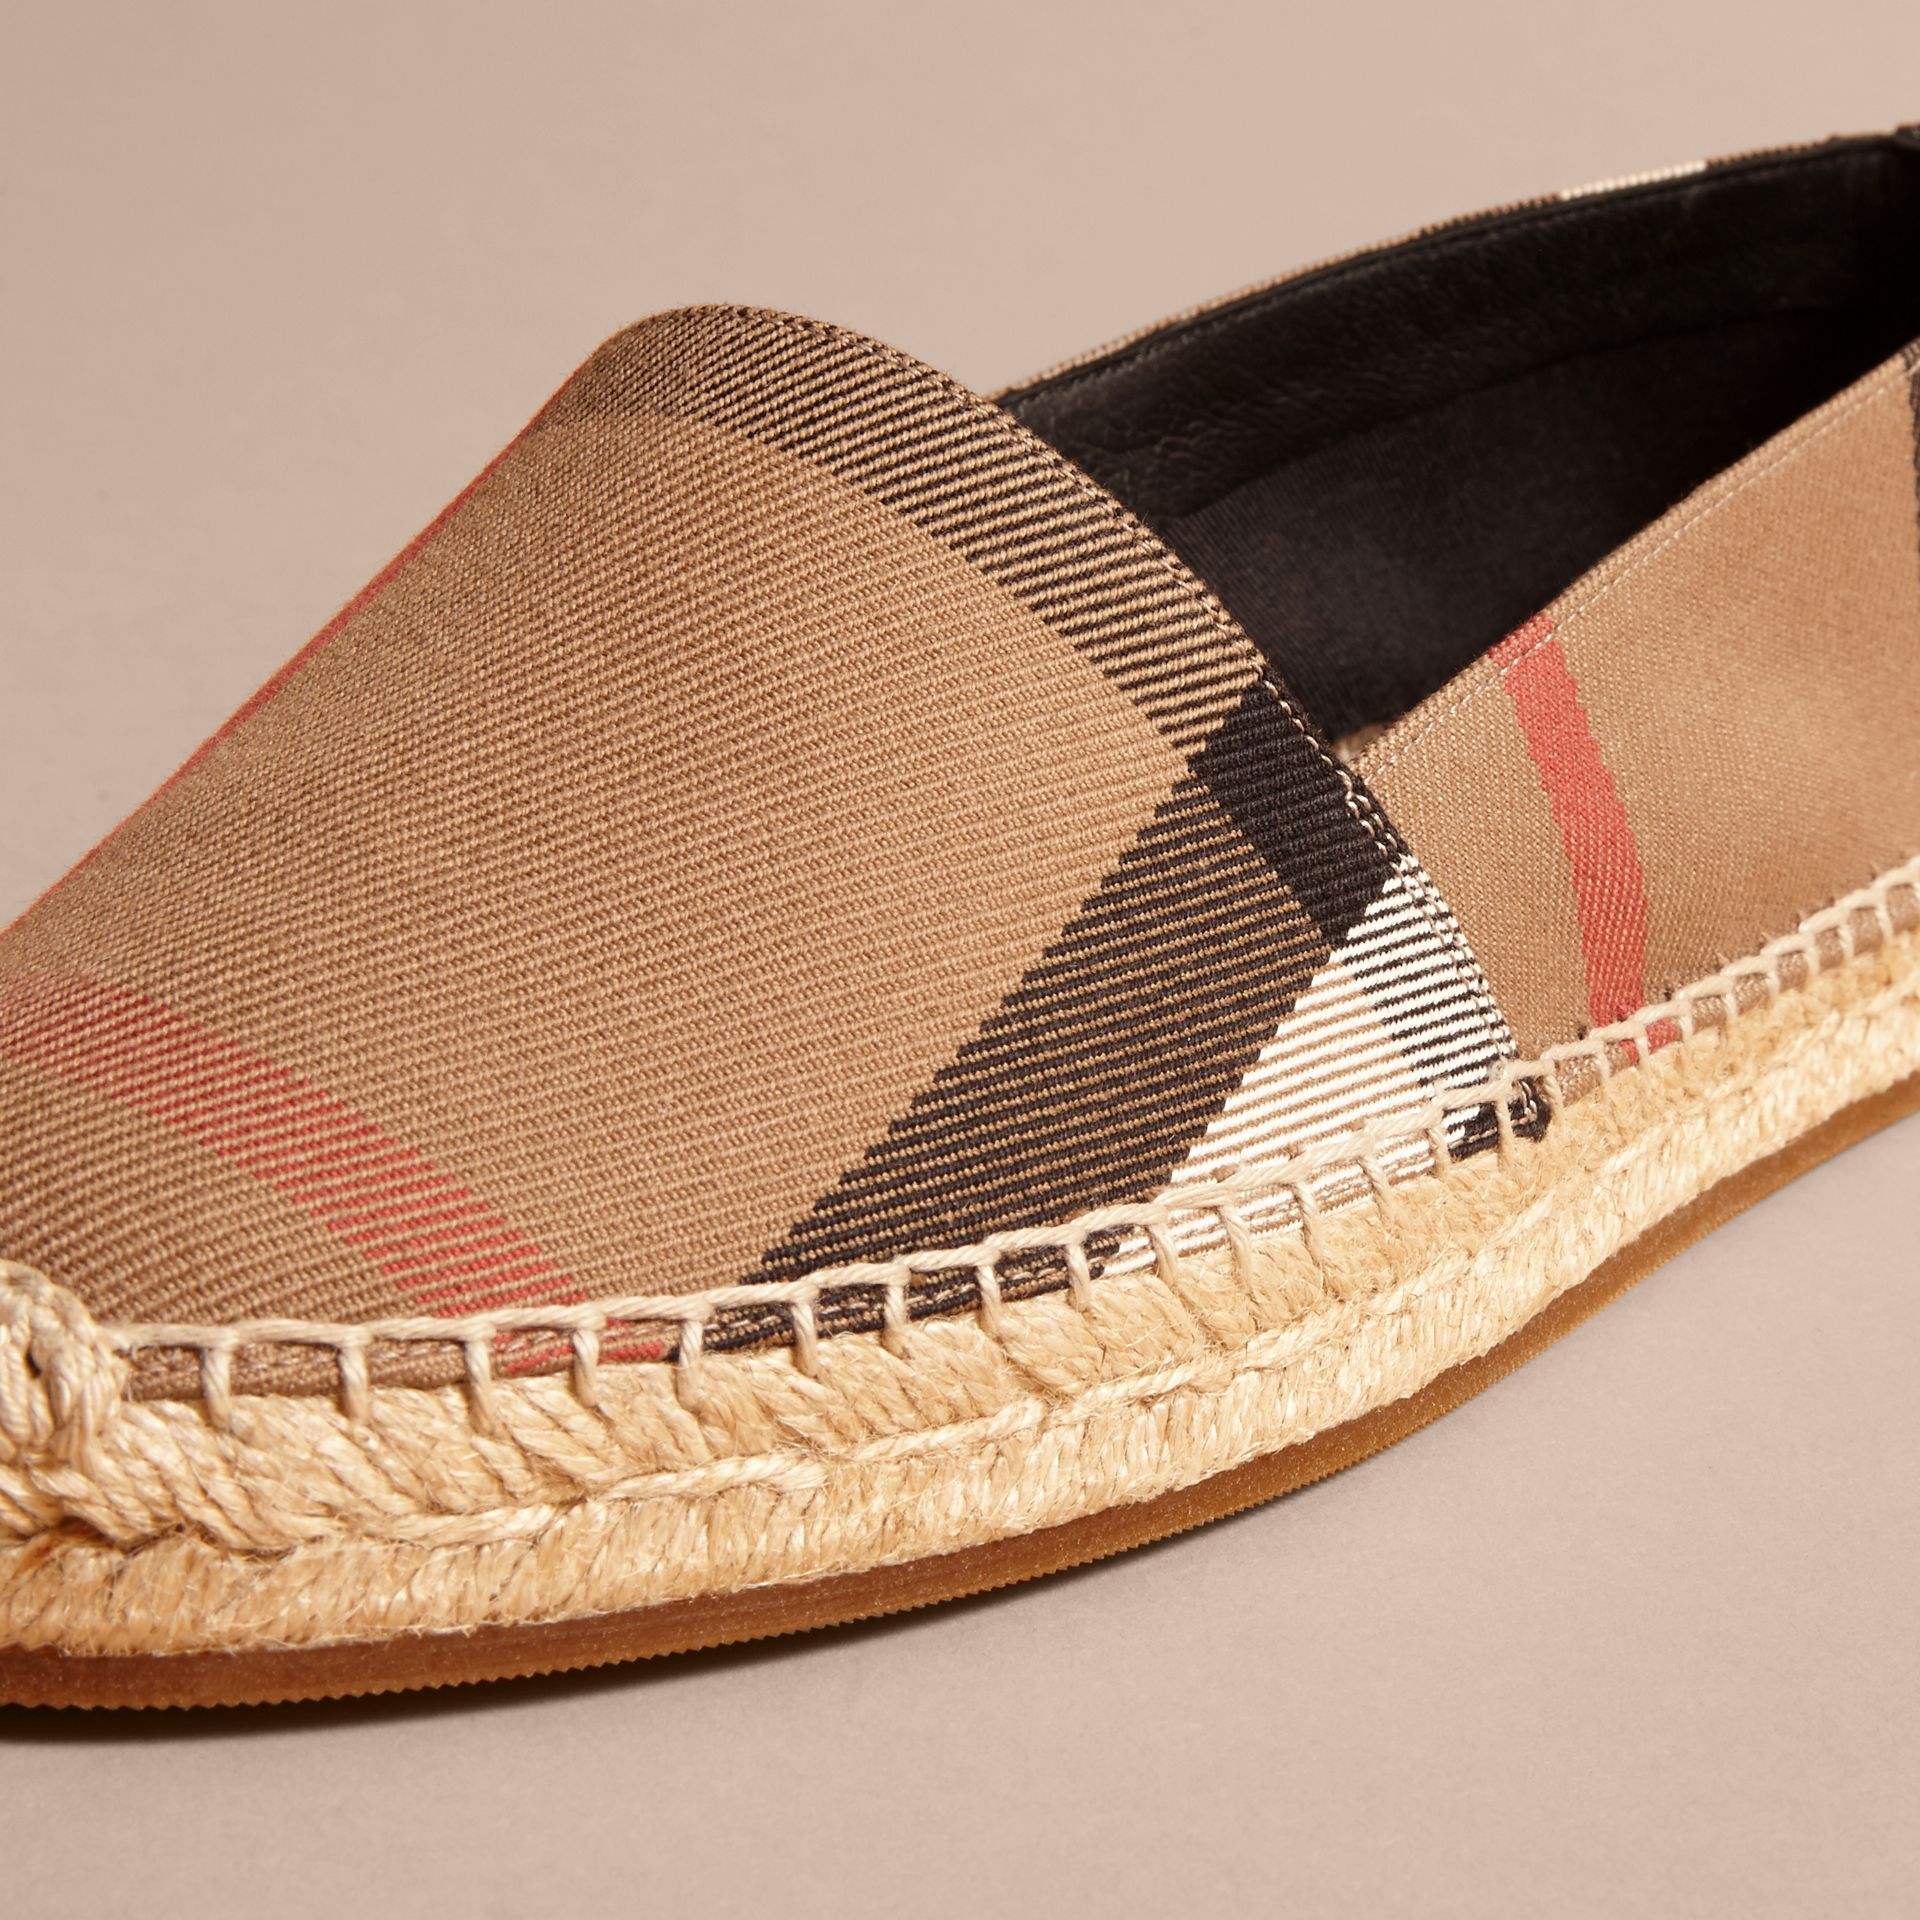 Leather Trim Canvas Check Espadrilles in Classic - Women | Burberry Singapore - gallery image 1